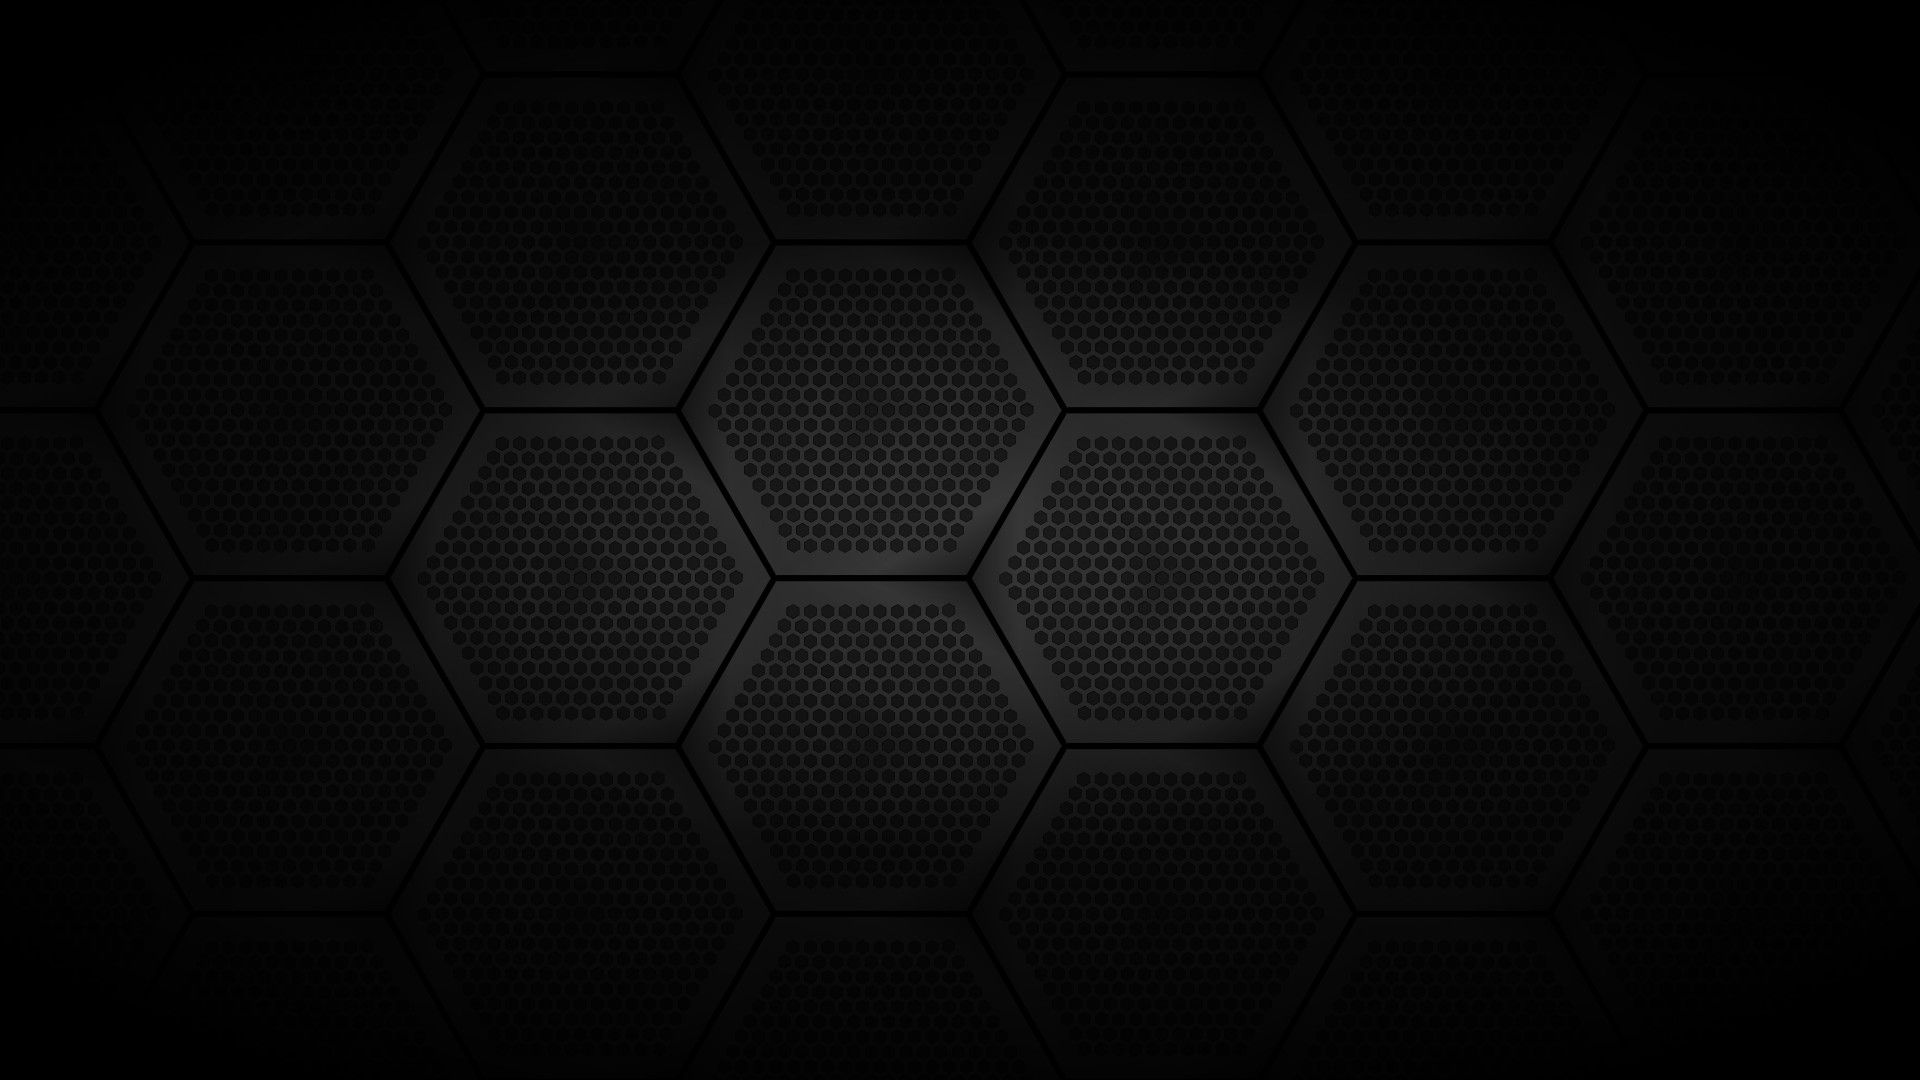 Dark Theme Wallpapers Top Free Dark Theme Backgrounds